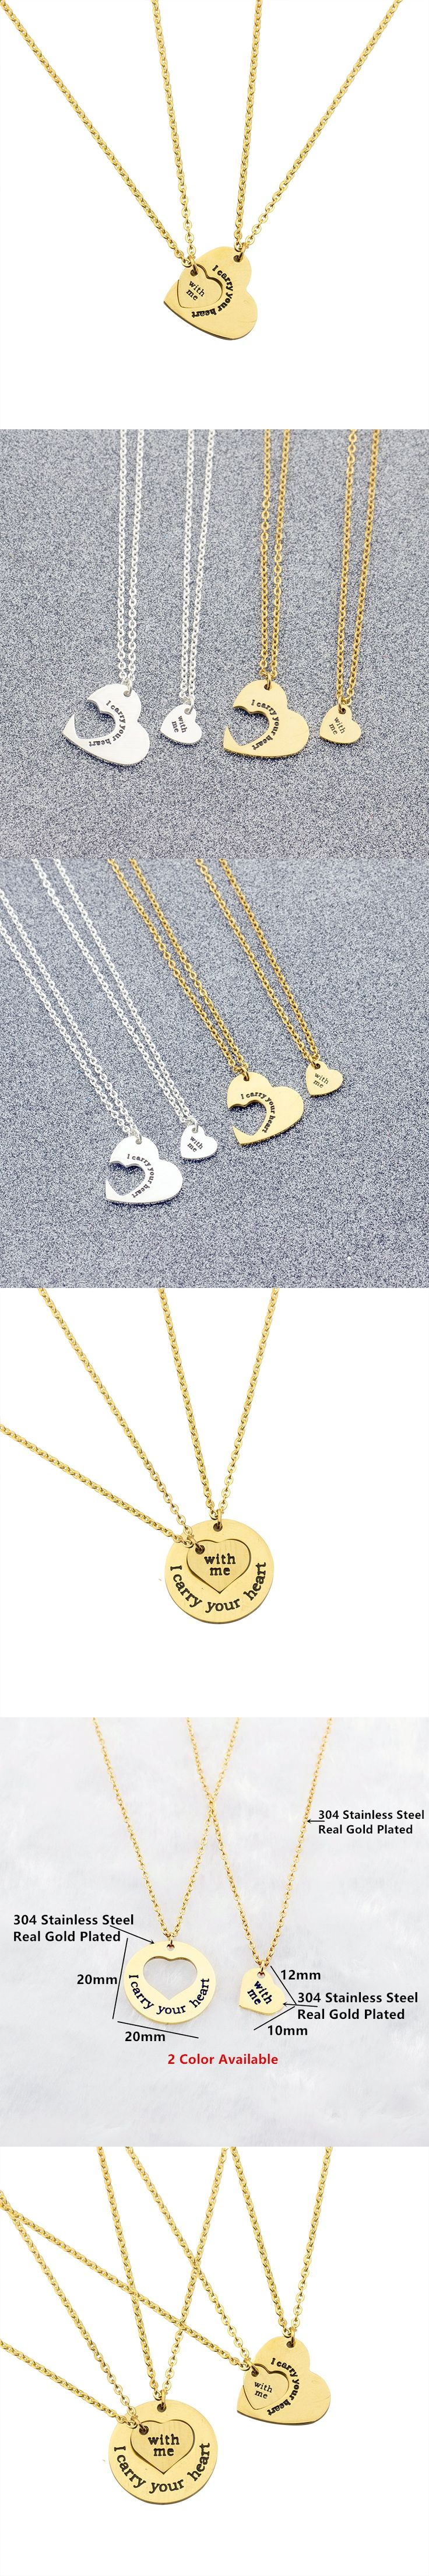 I Carry Your Heart & With Me Set Pendant Necklaces For Couples Promise Jewelry Bride Gifts Women Matching Heart Choker Necklace